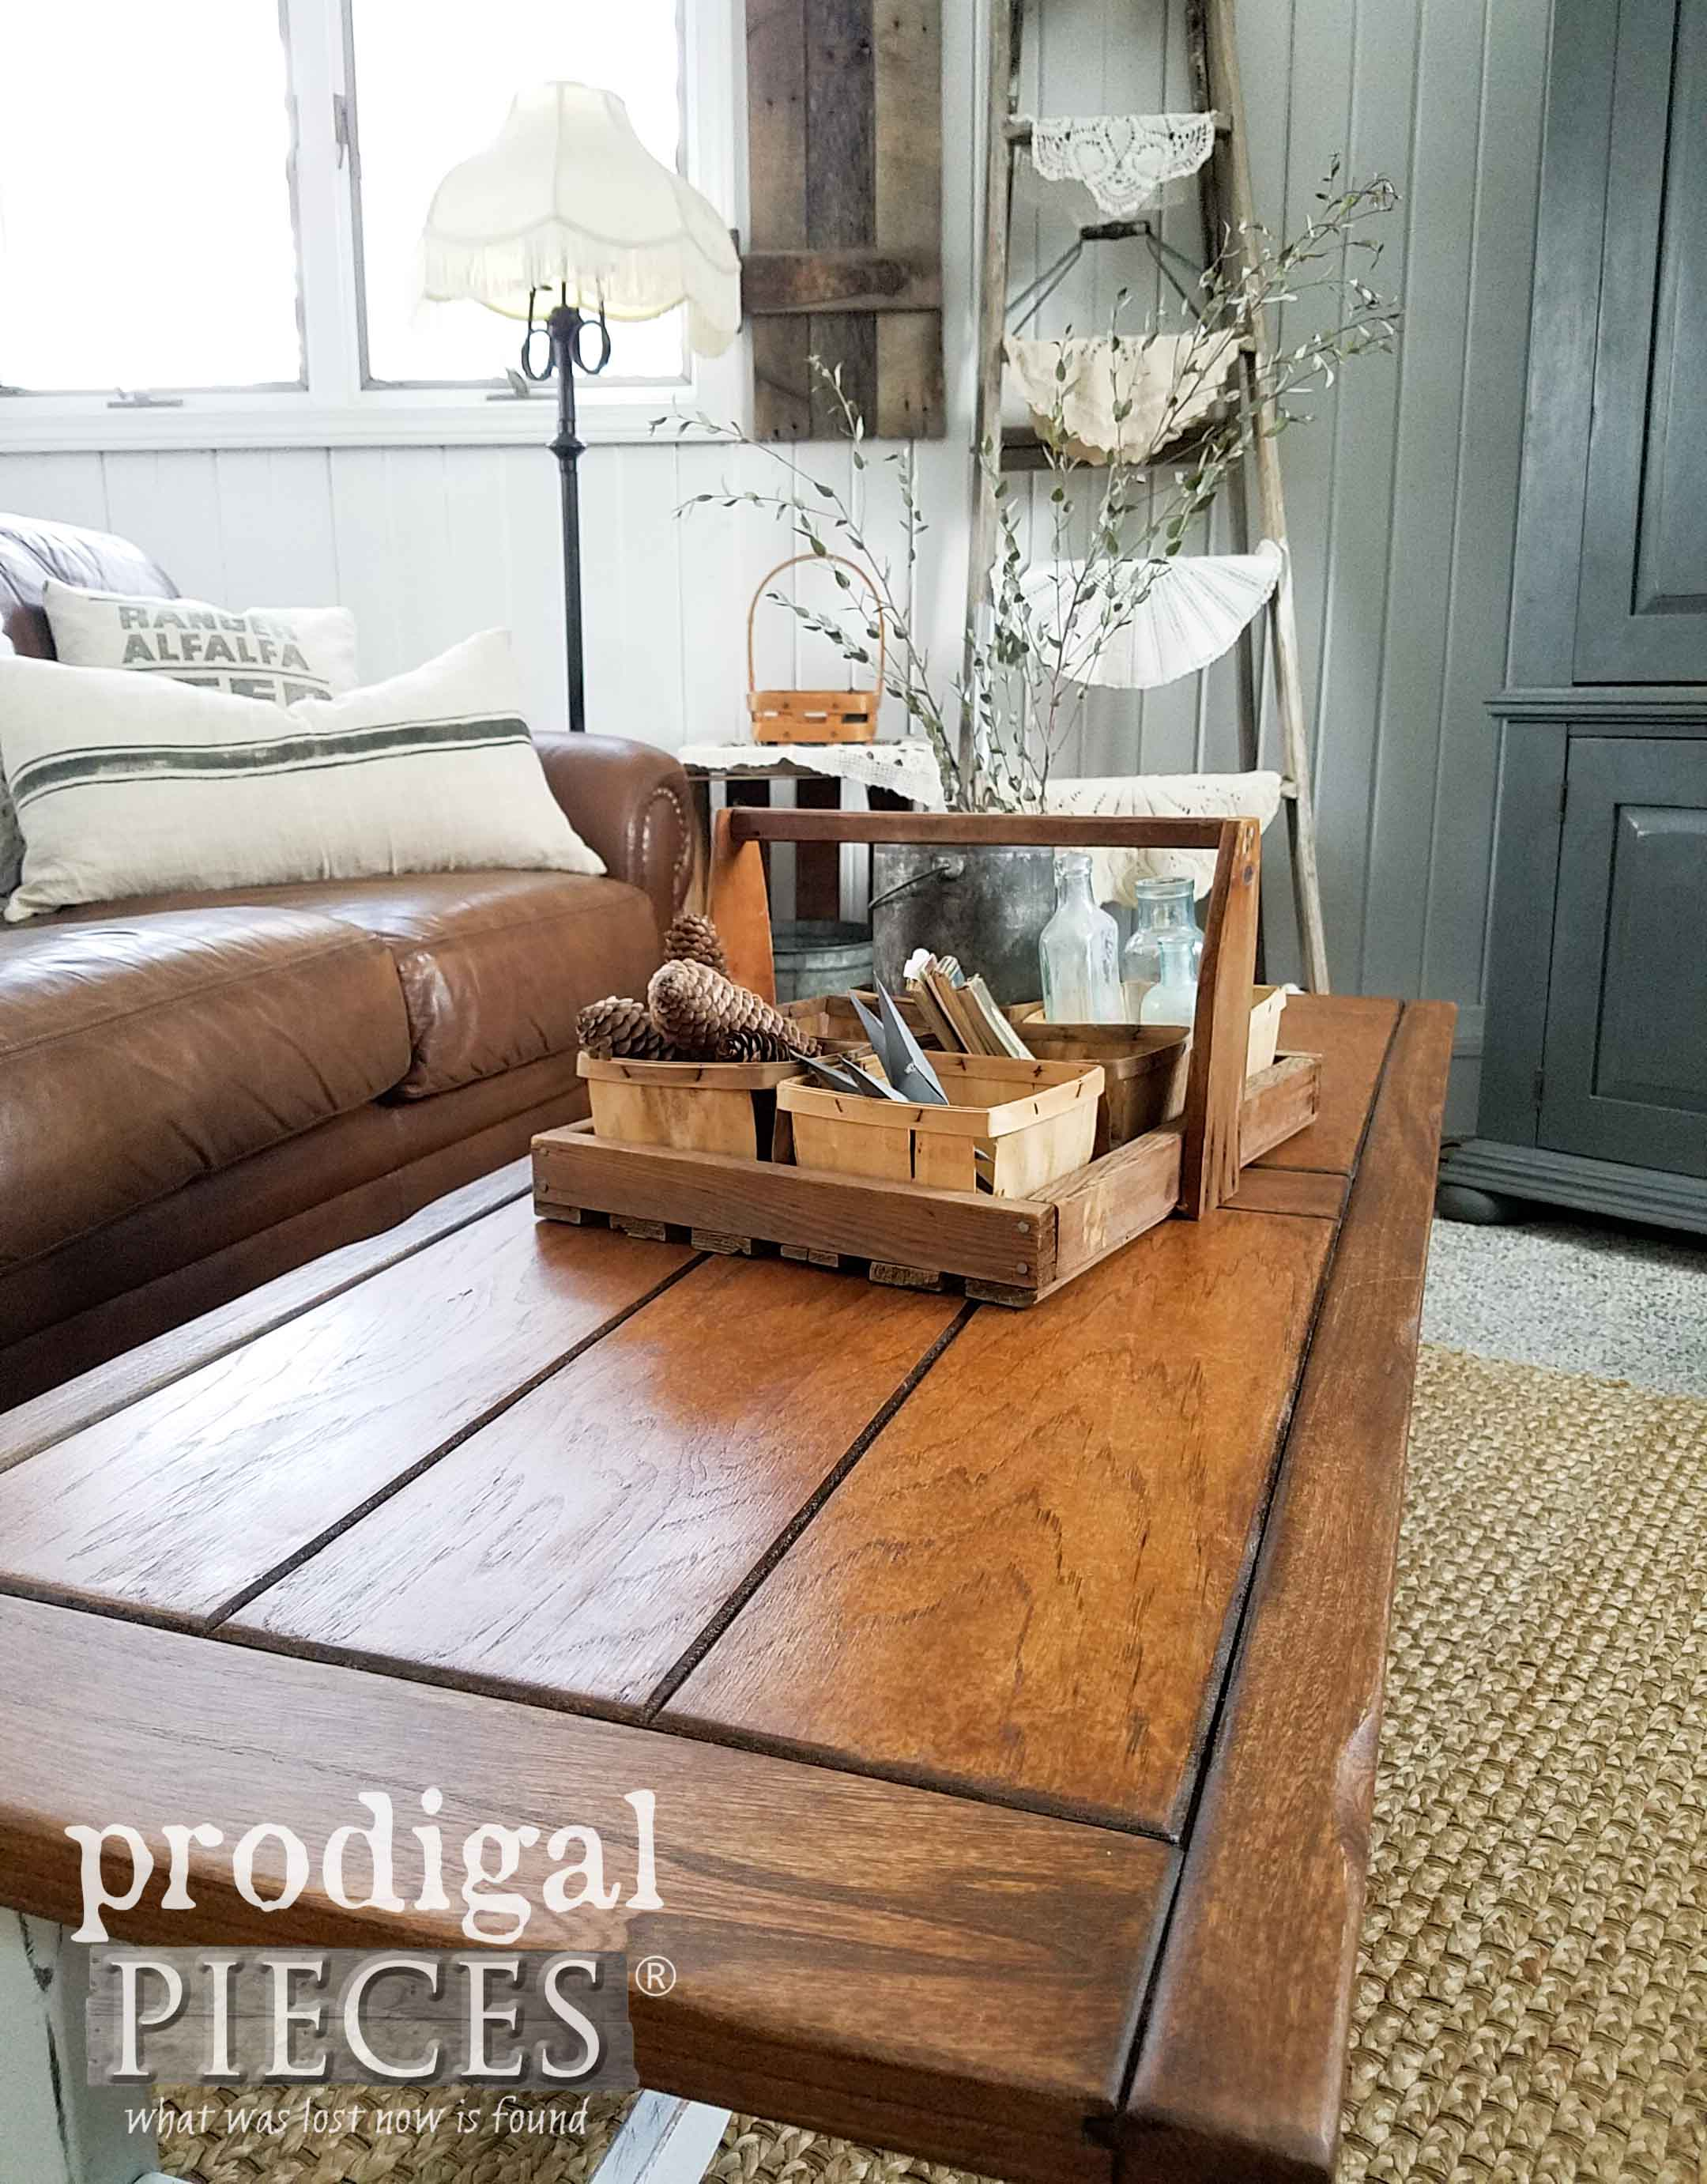 Create the farmhouse look for less with a thrift store table turned farmhouse style. See the details at Prodigal Pieces | prodigalpieces.com